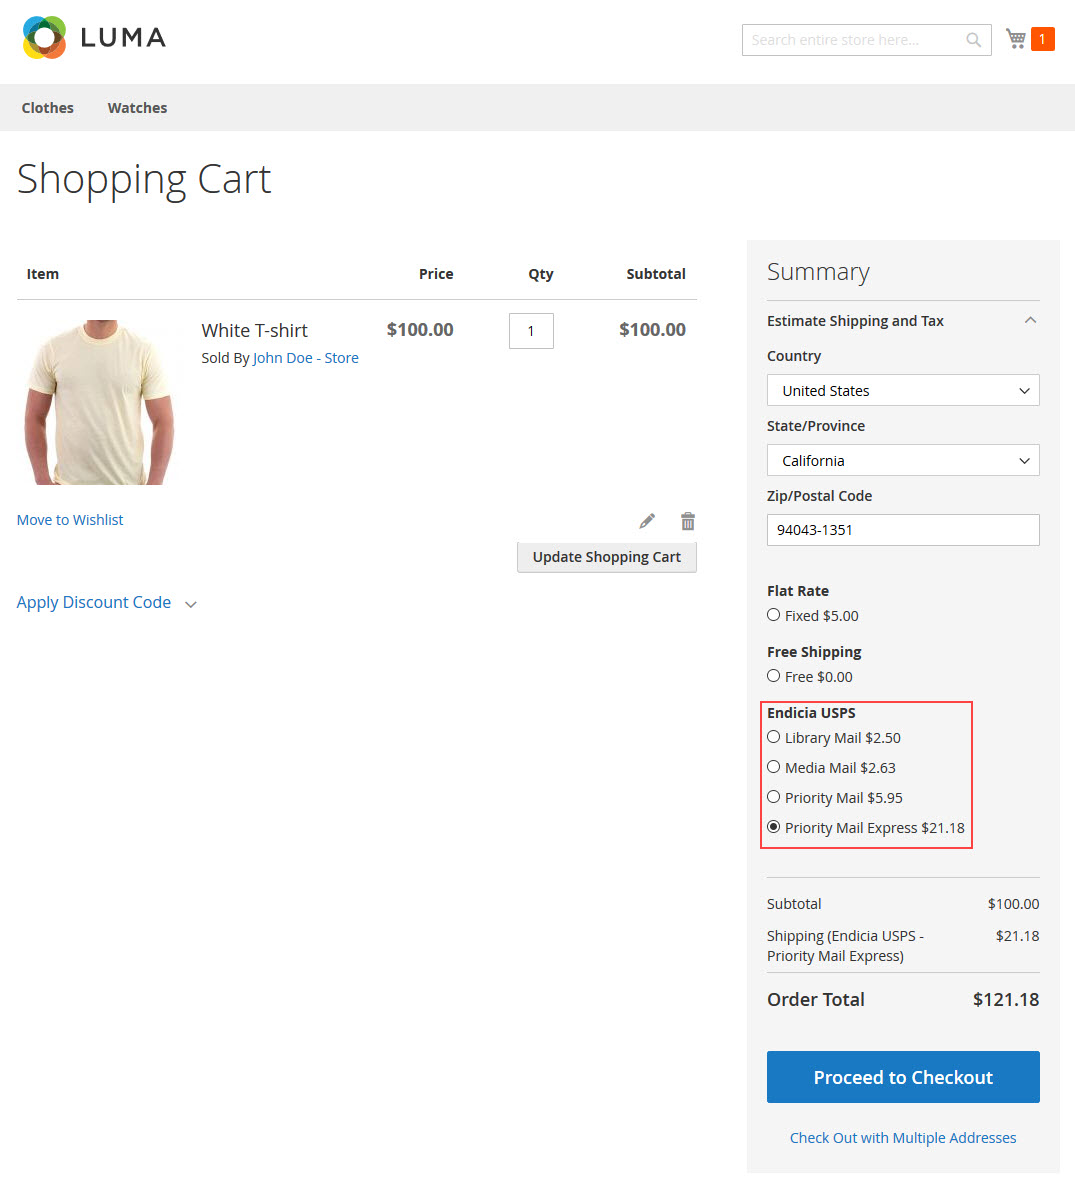 The Customer Can Check Shipping Rates From Shopping Cart And Estimate Costs Taxes Without Going Through Checkout Process